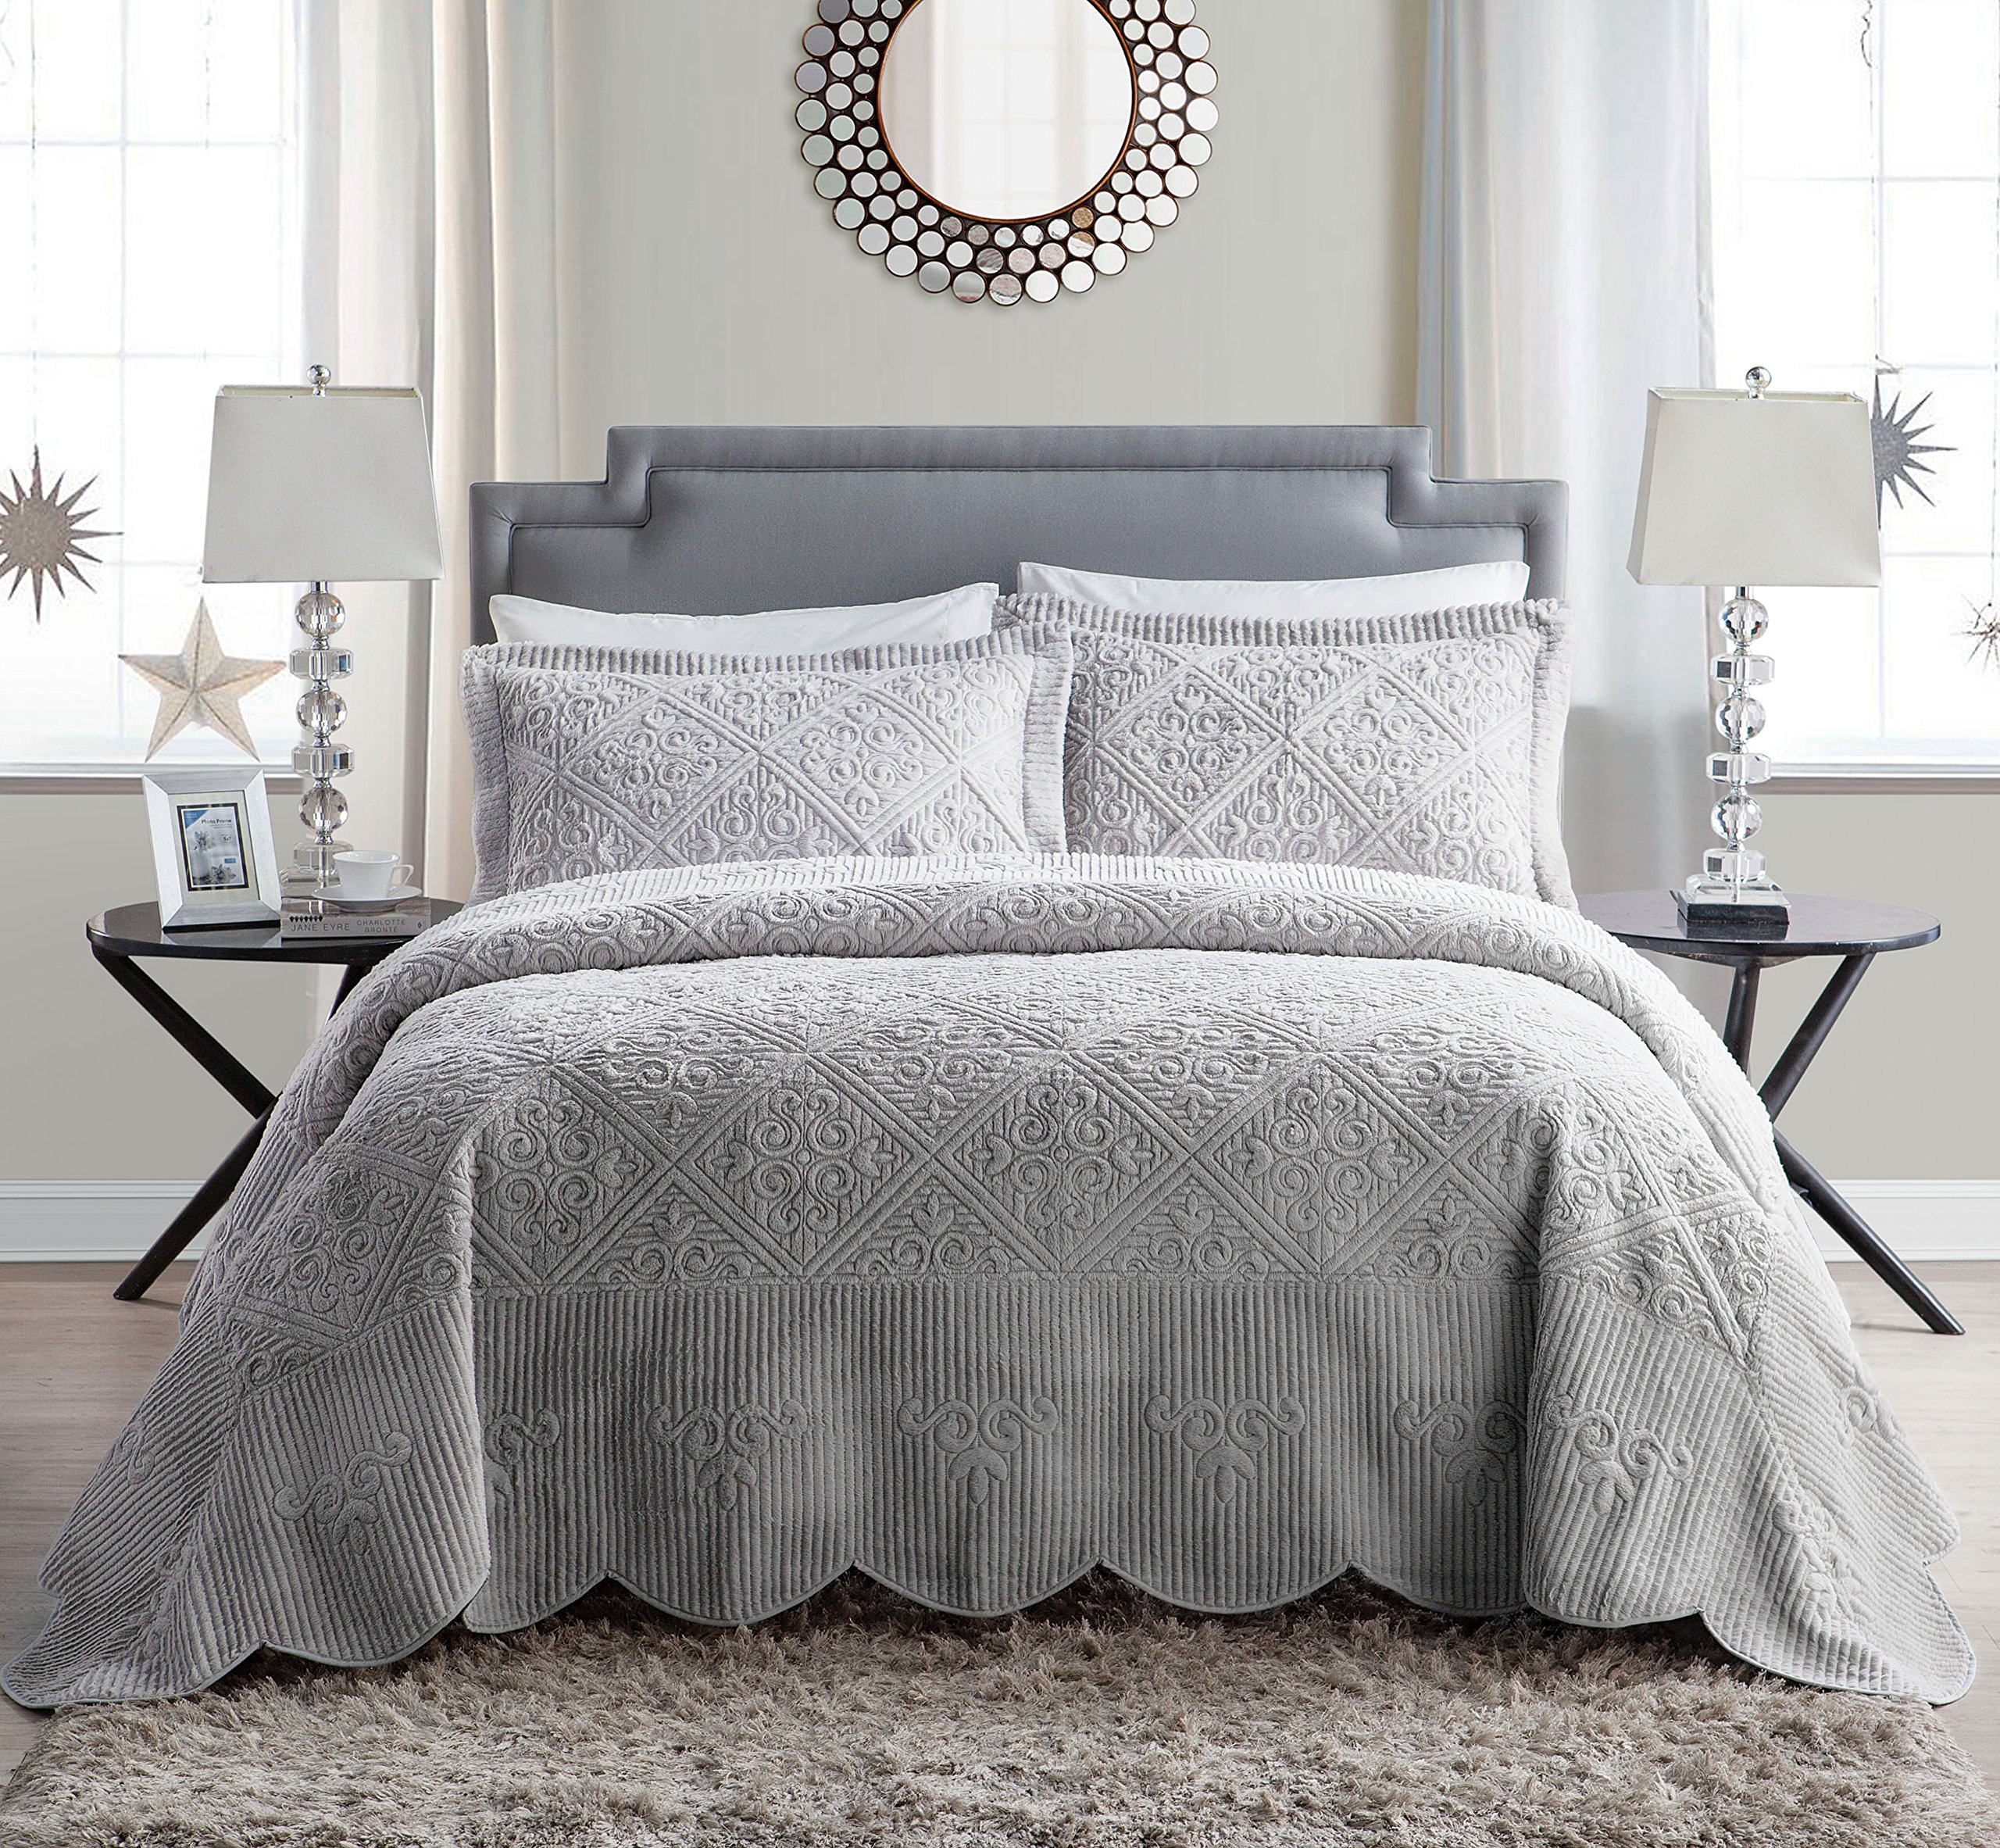 VCNY Home WS1-3BP-KING-IN-GV Westland Plush Quilted 3-Piece Bedspread Set, King, Grey